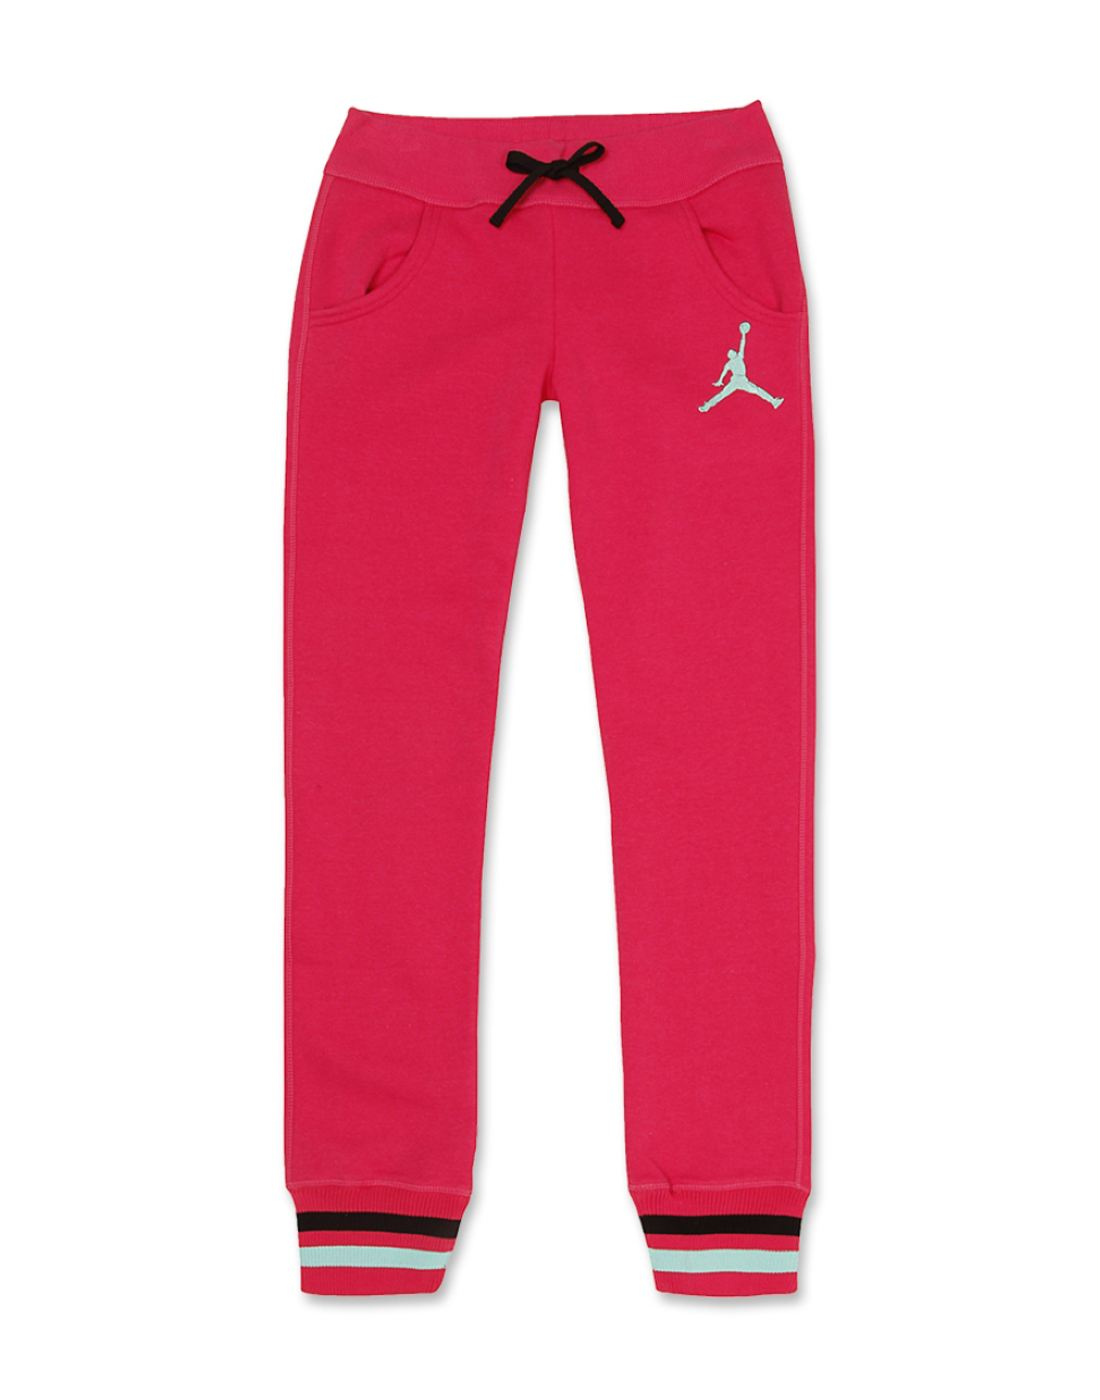 Jordan Girls Pink Solid Bottom